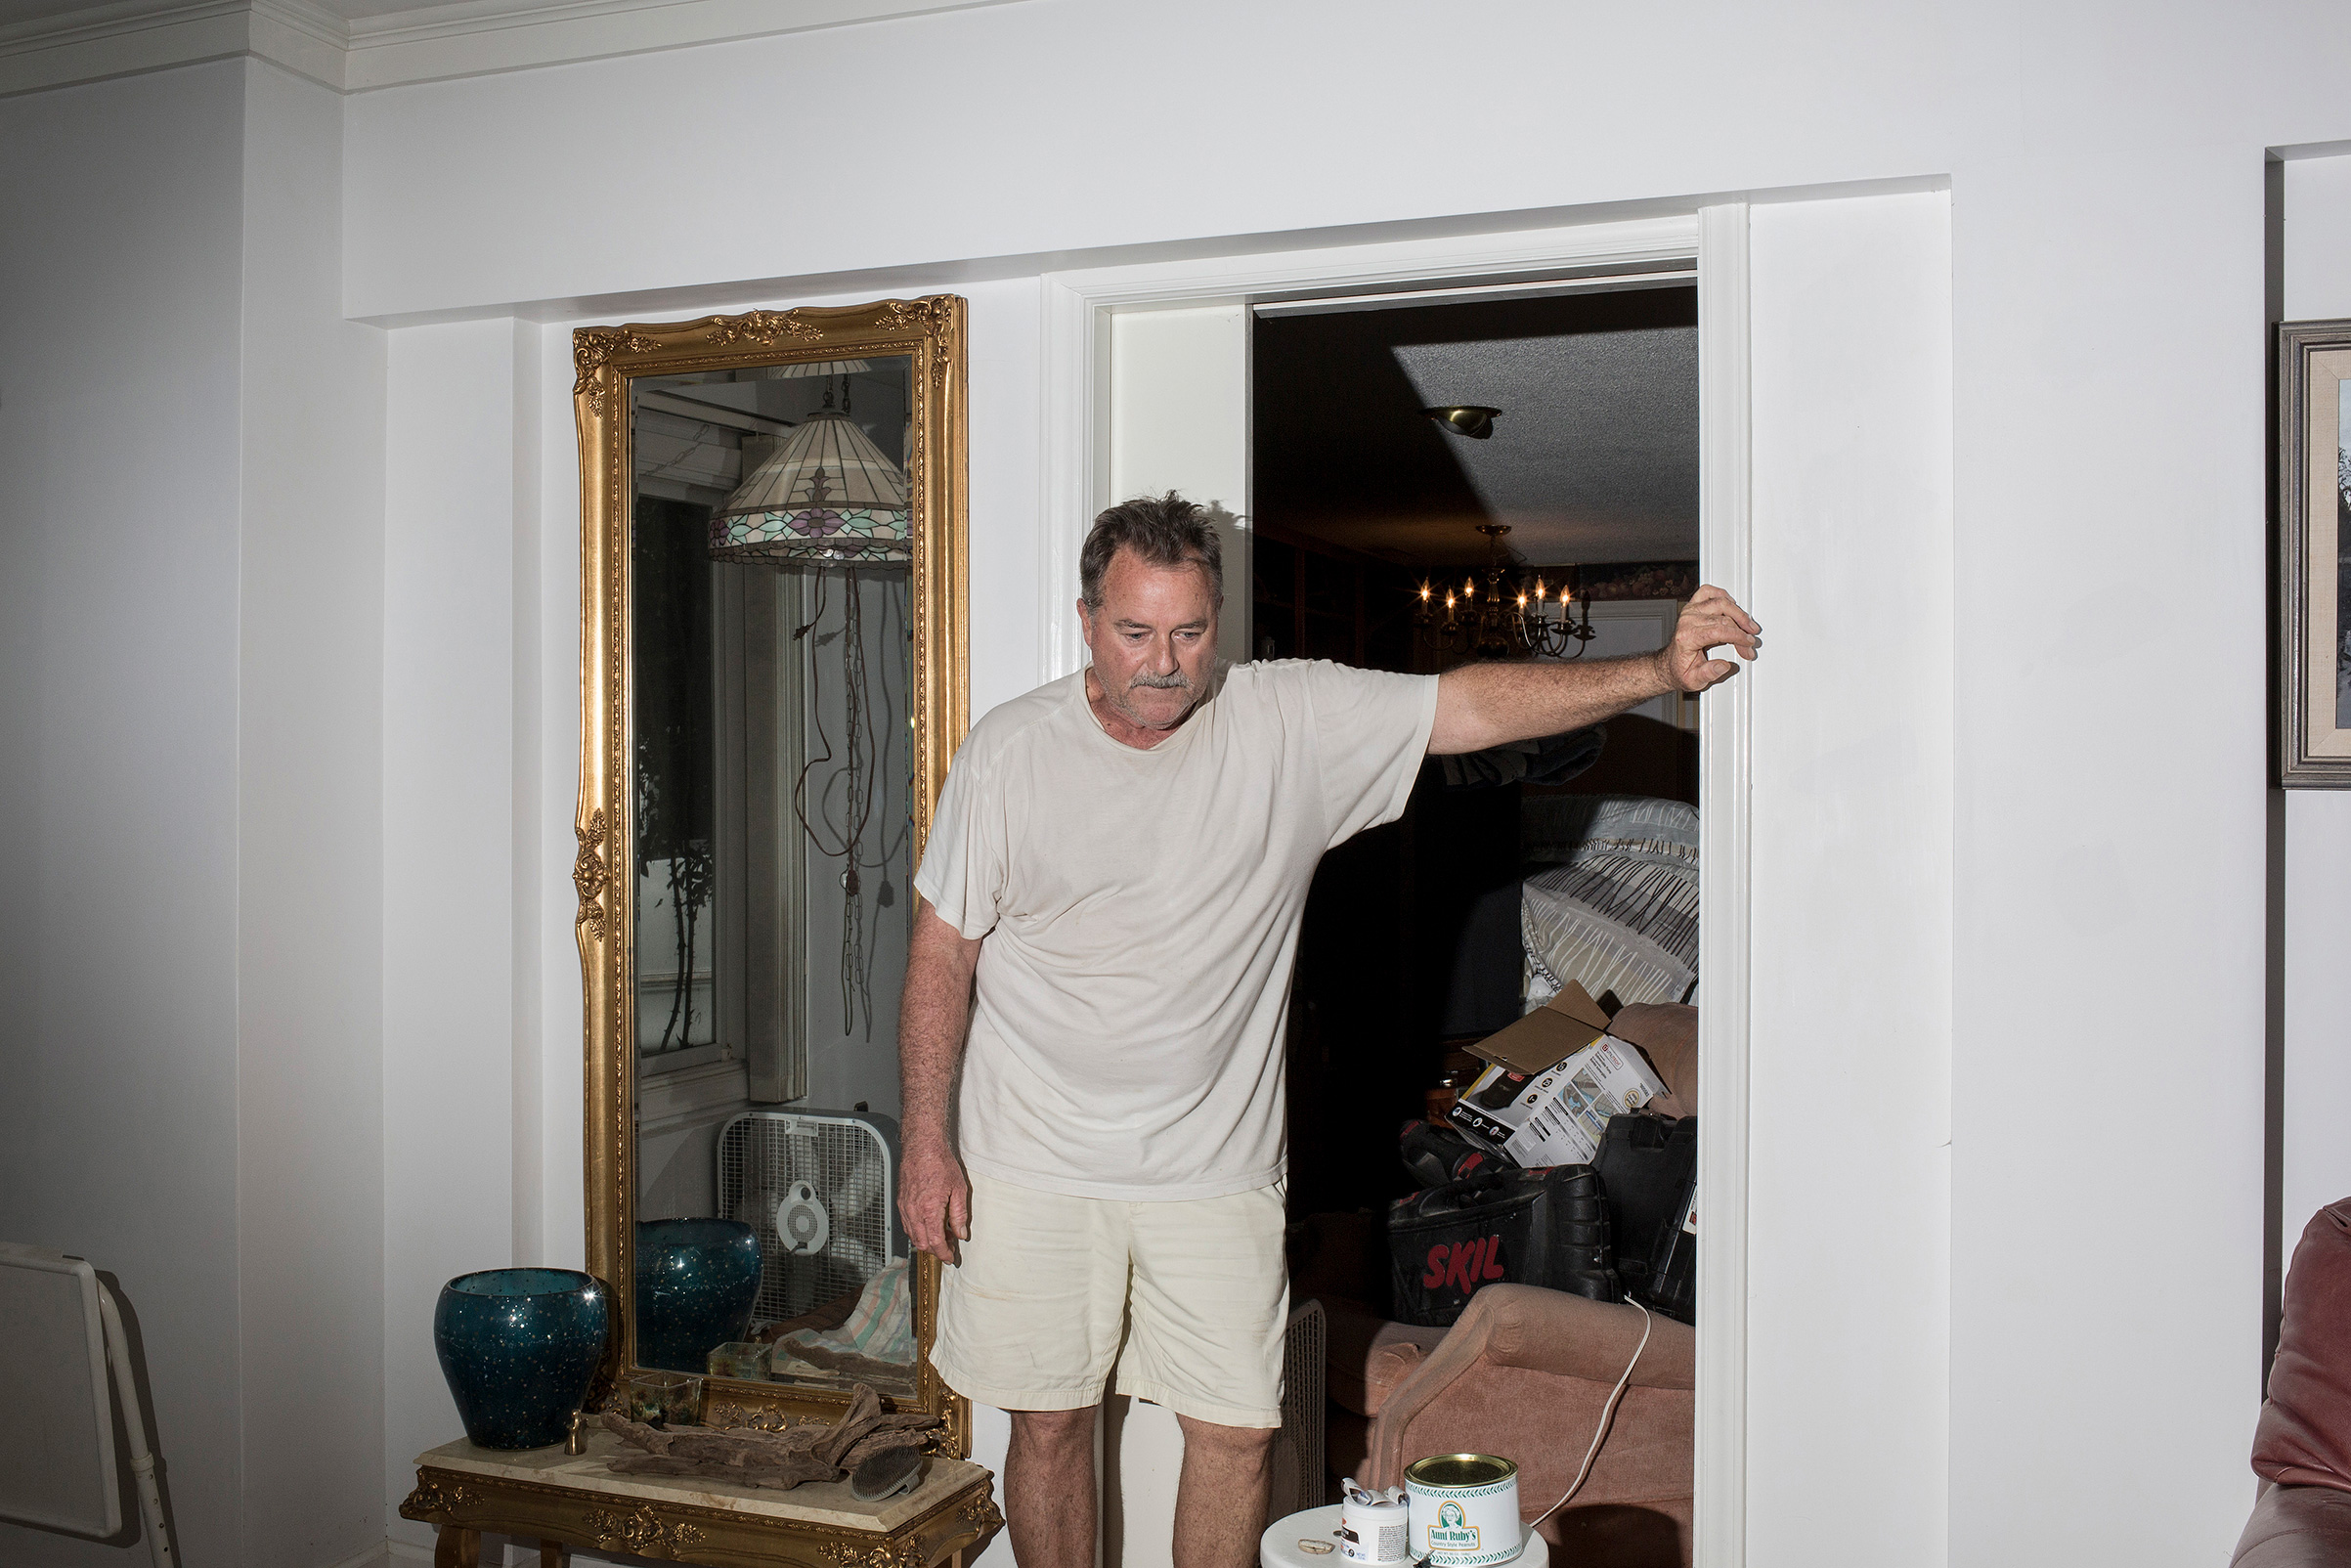 Lee Roy Scott surveys the damage to his home which was flooded due to storm surge from Hurricane Florence in Washington, N.C. on Sept. 15.